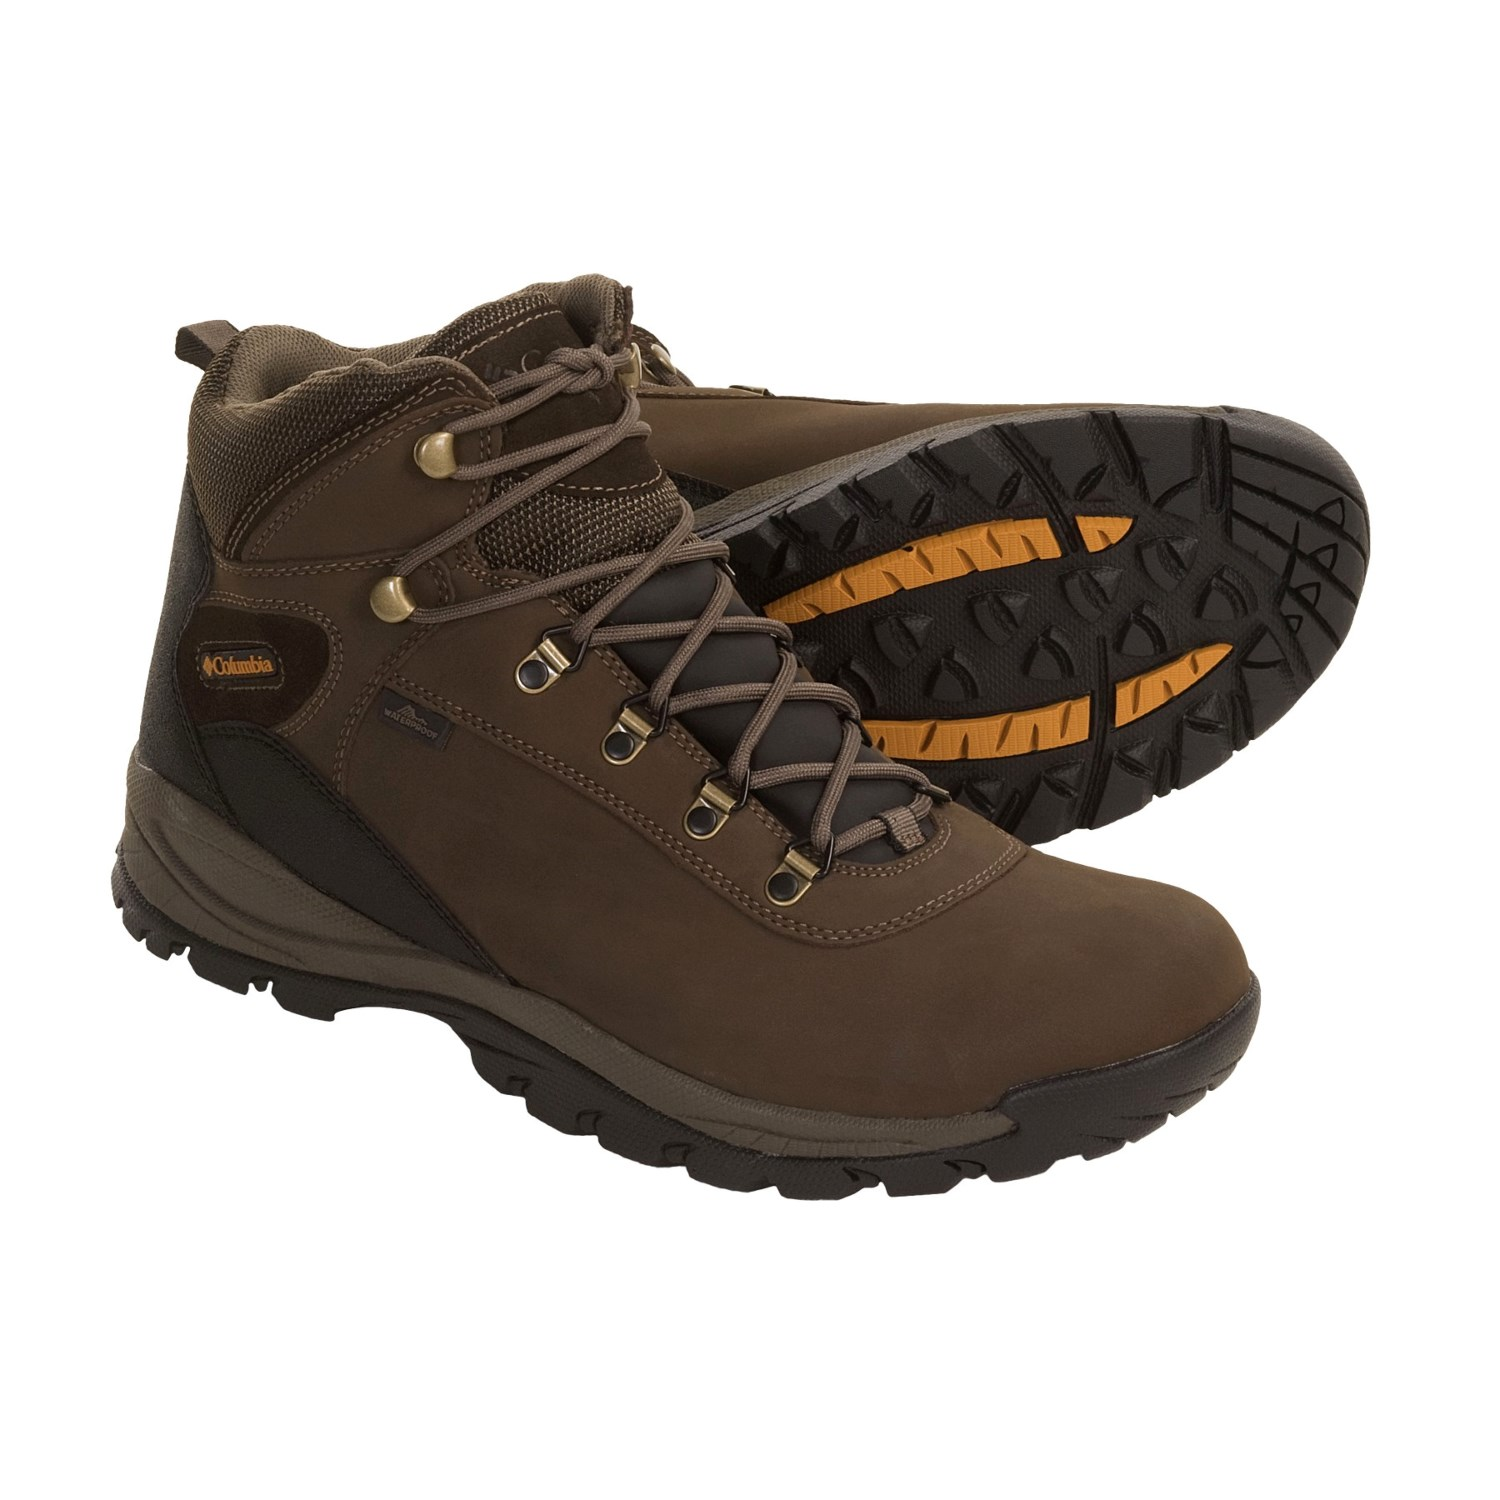 mens leather hiking boots reviews